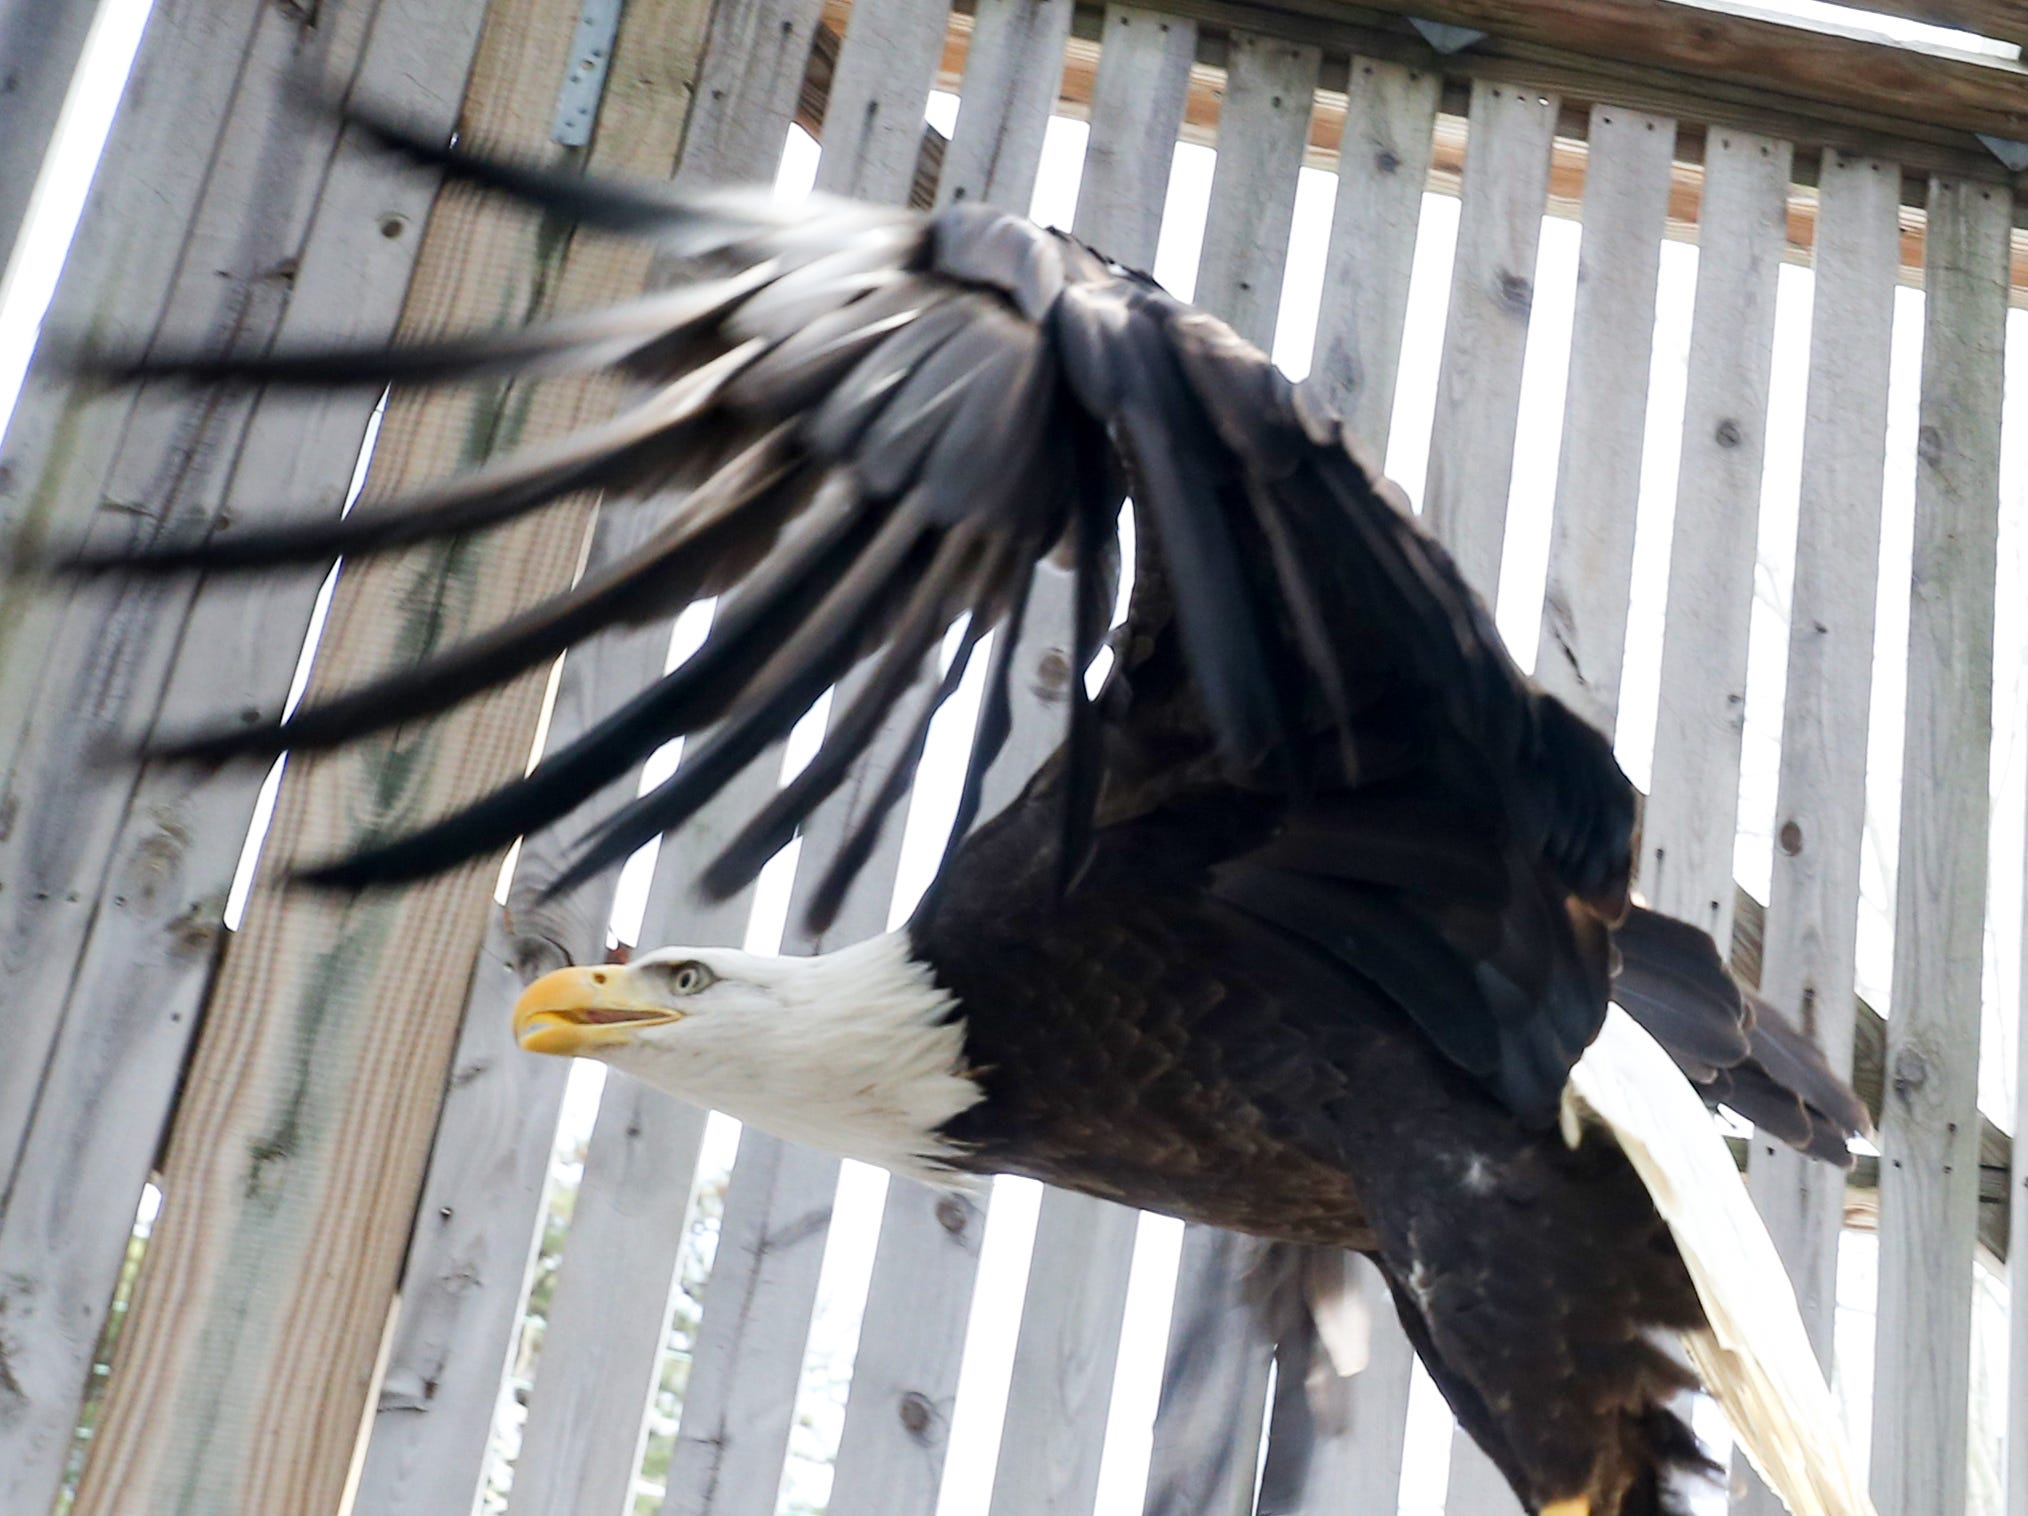 A female eagle at Raptor Rehab flies around her inclosure as crews get ready to catch, transport and release her back into the wild. Jan. 22, 2019